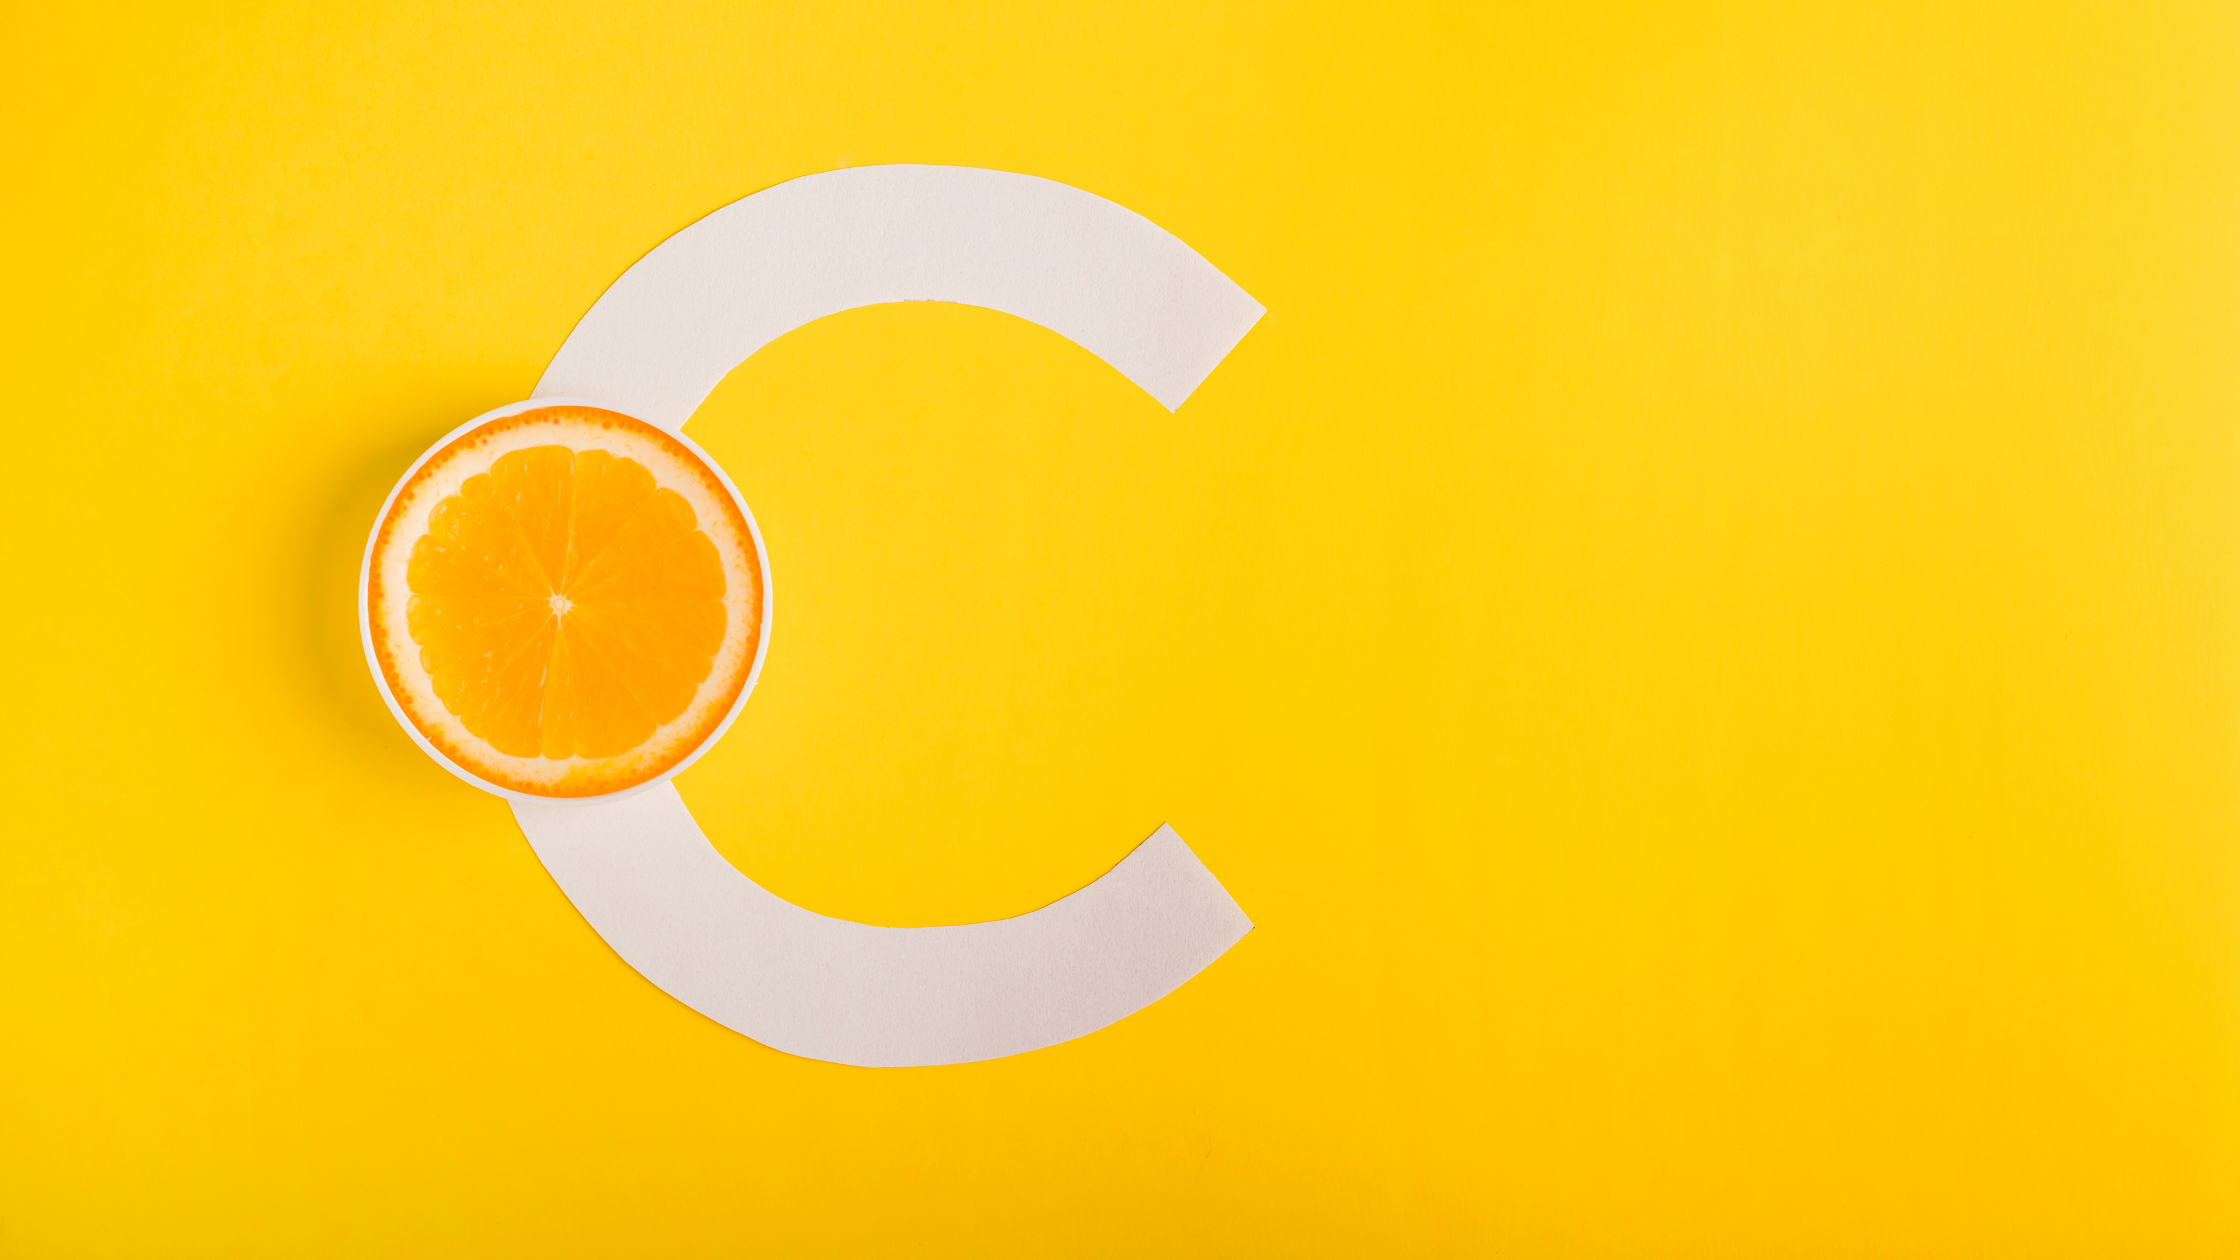 6 benefits of Vitamin C-IV Infusion for COVID-19 patients